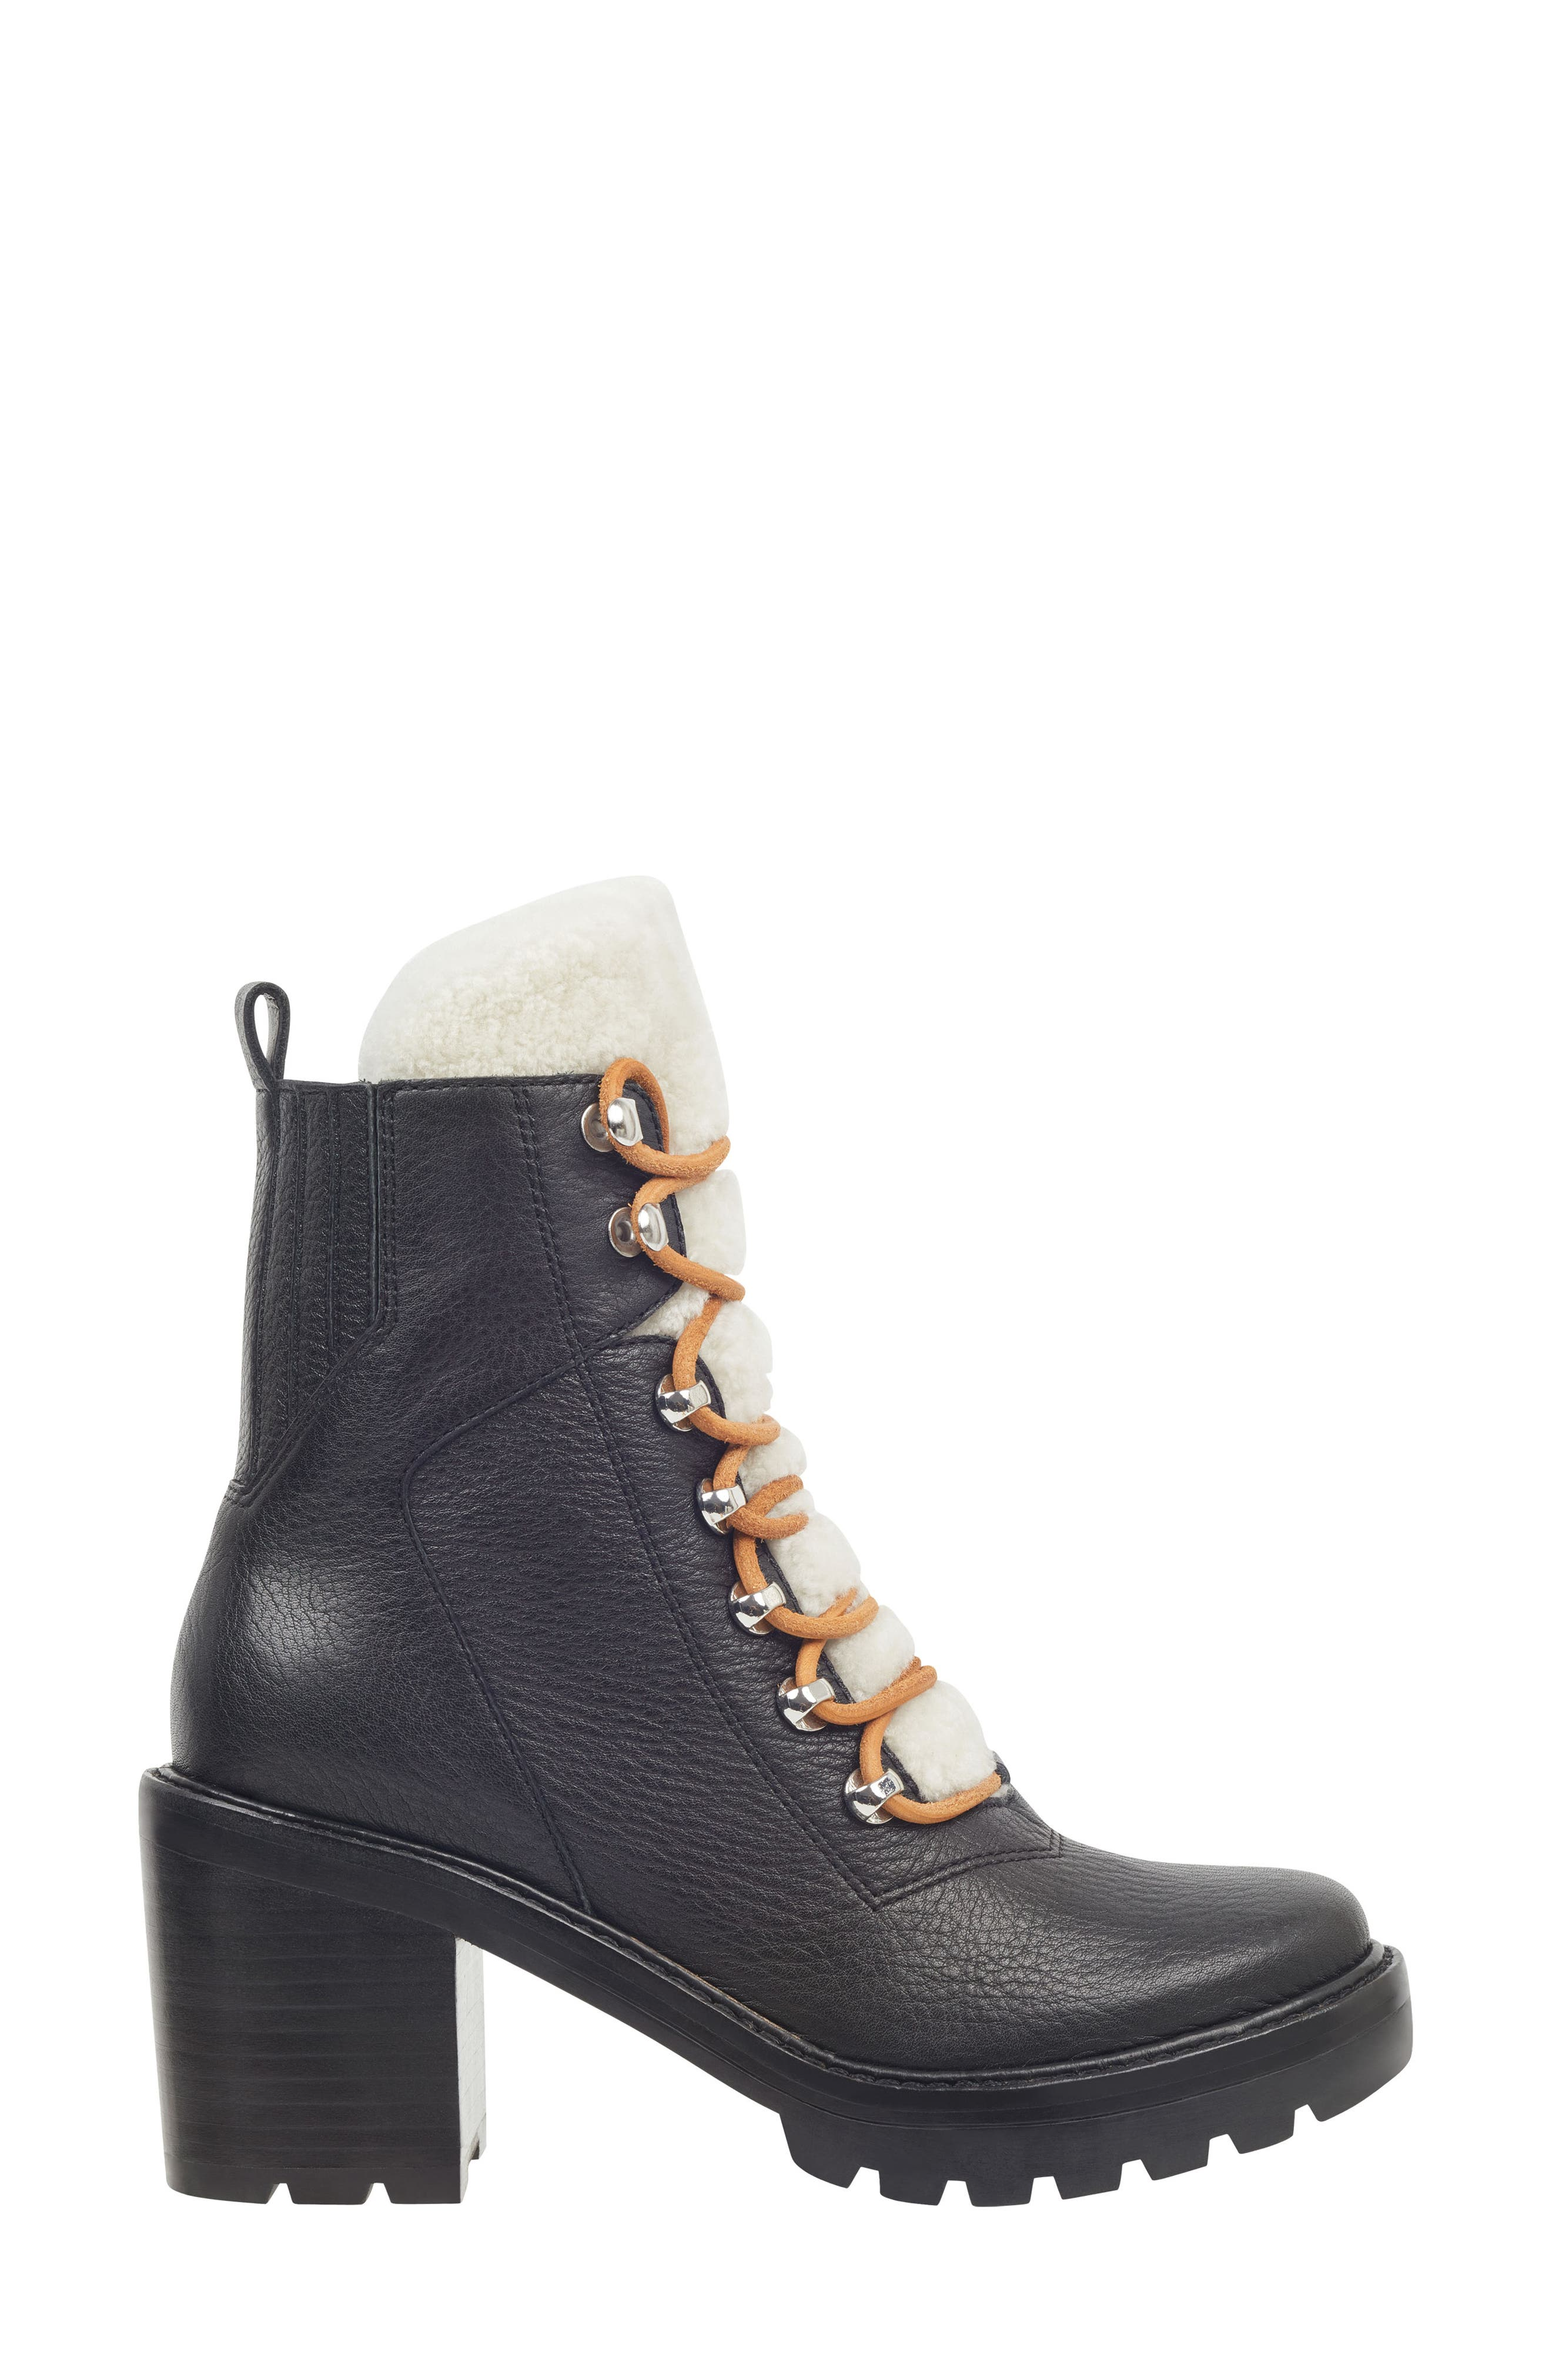 Denise Combat Boot,                             Alternate thumbnail 3, color,                             BLACK/ NATURAL LEATHER